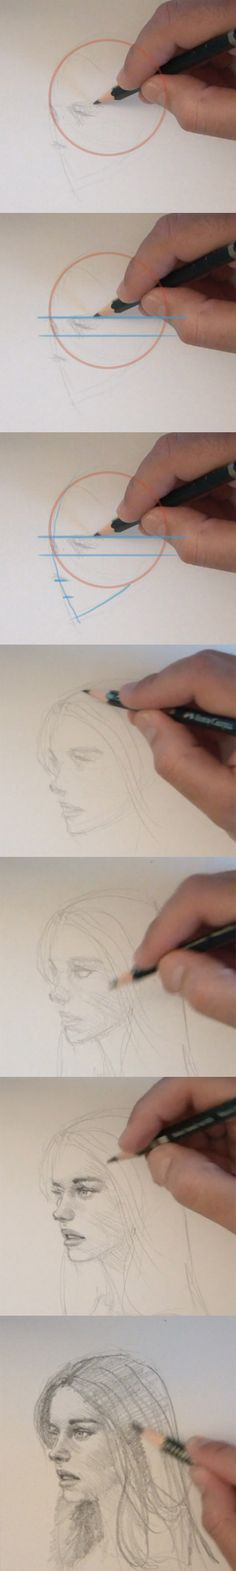 learn to draw people face